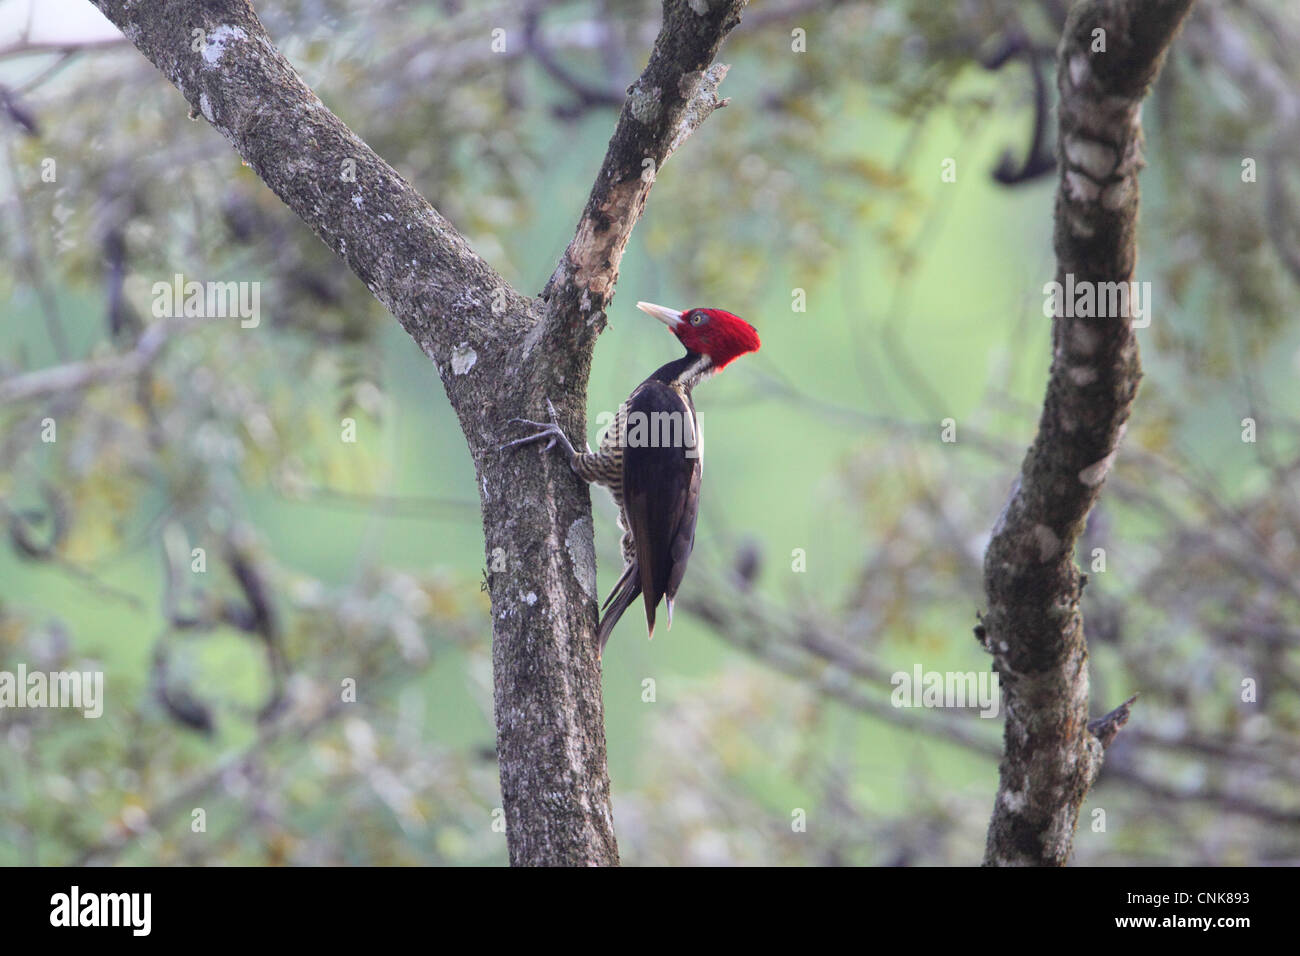 Pale-billed Woodpecker (Campephilus guatemalensis) adult female, foraging on tree trunk, Costa Rica, february - Stock Image